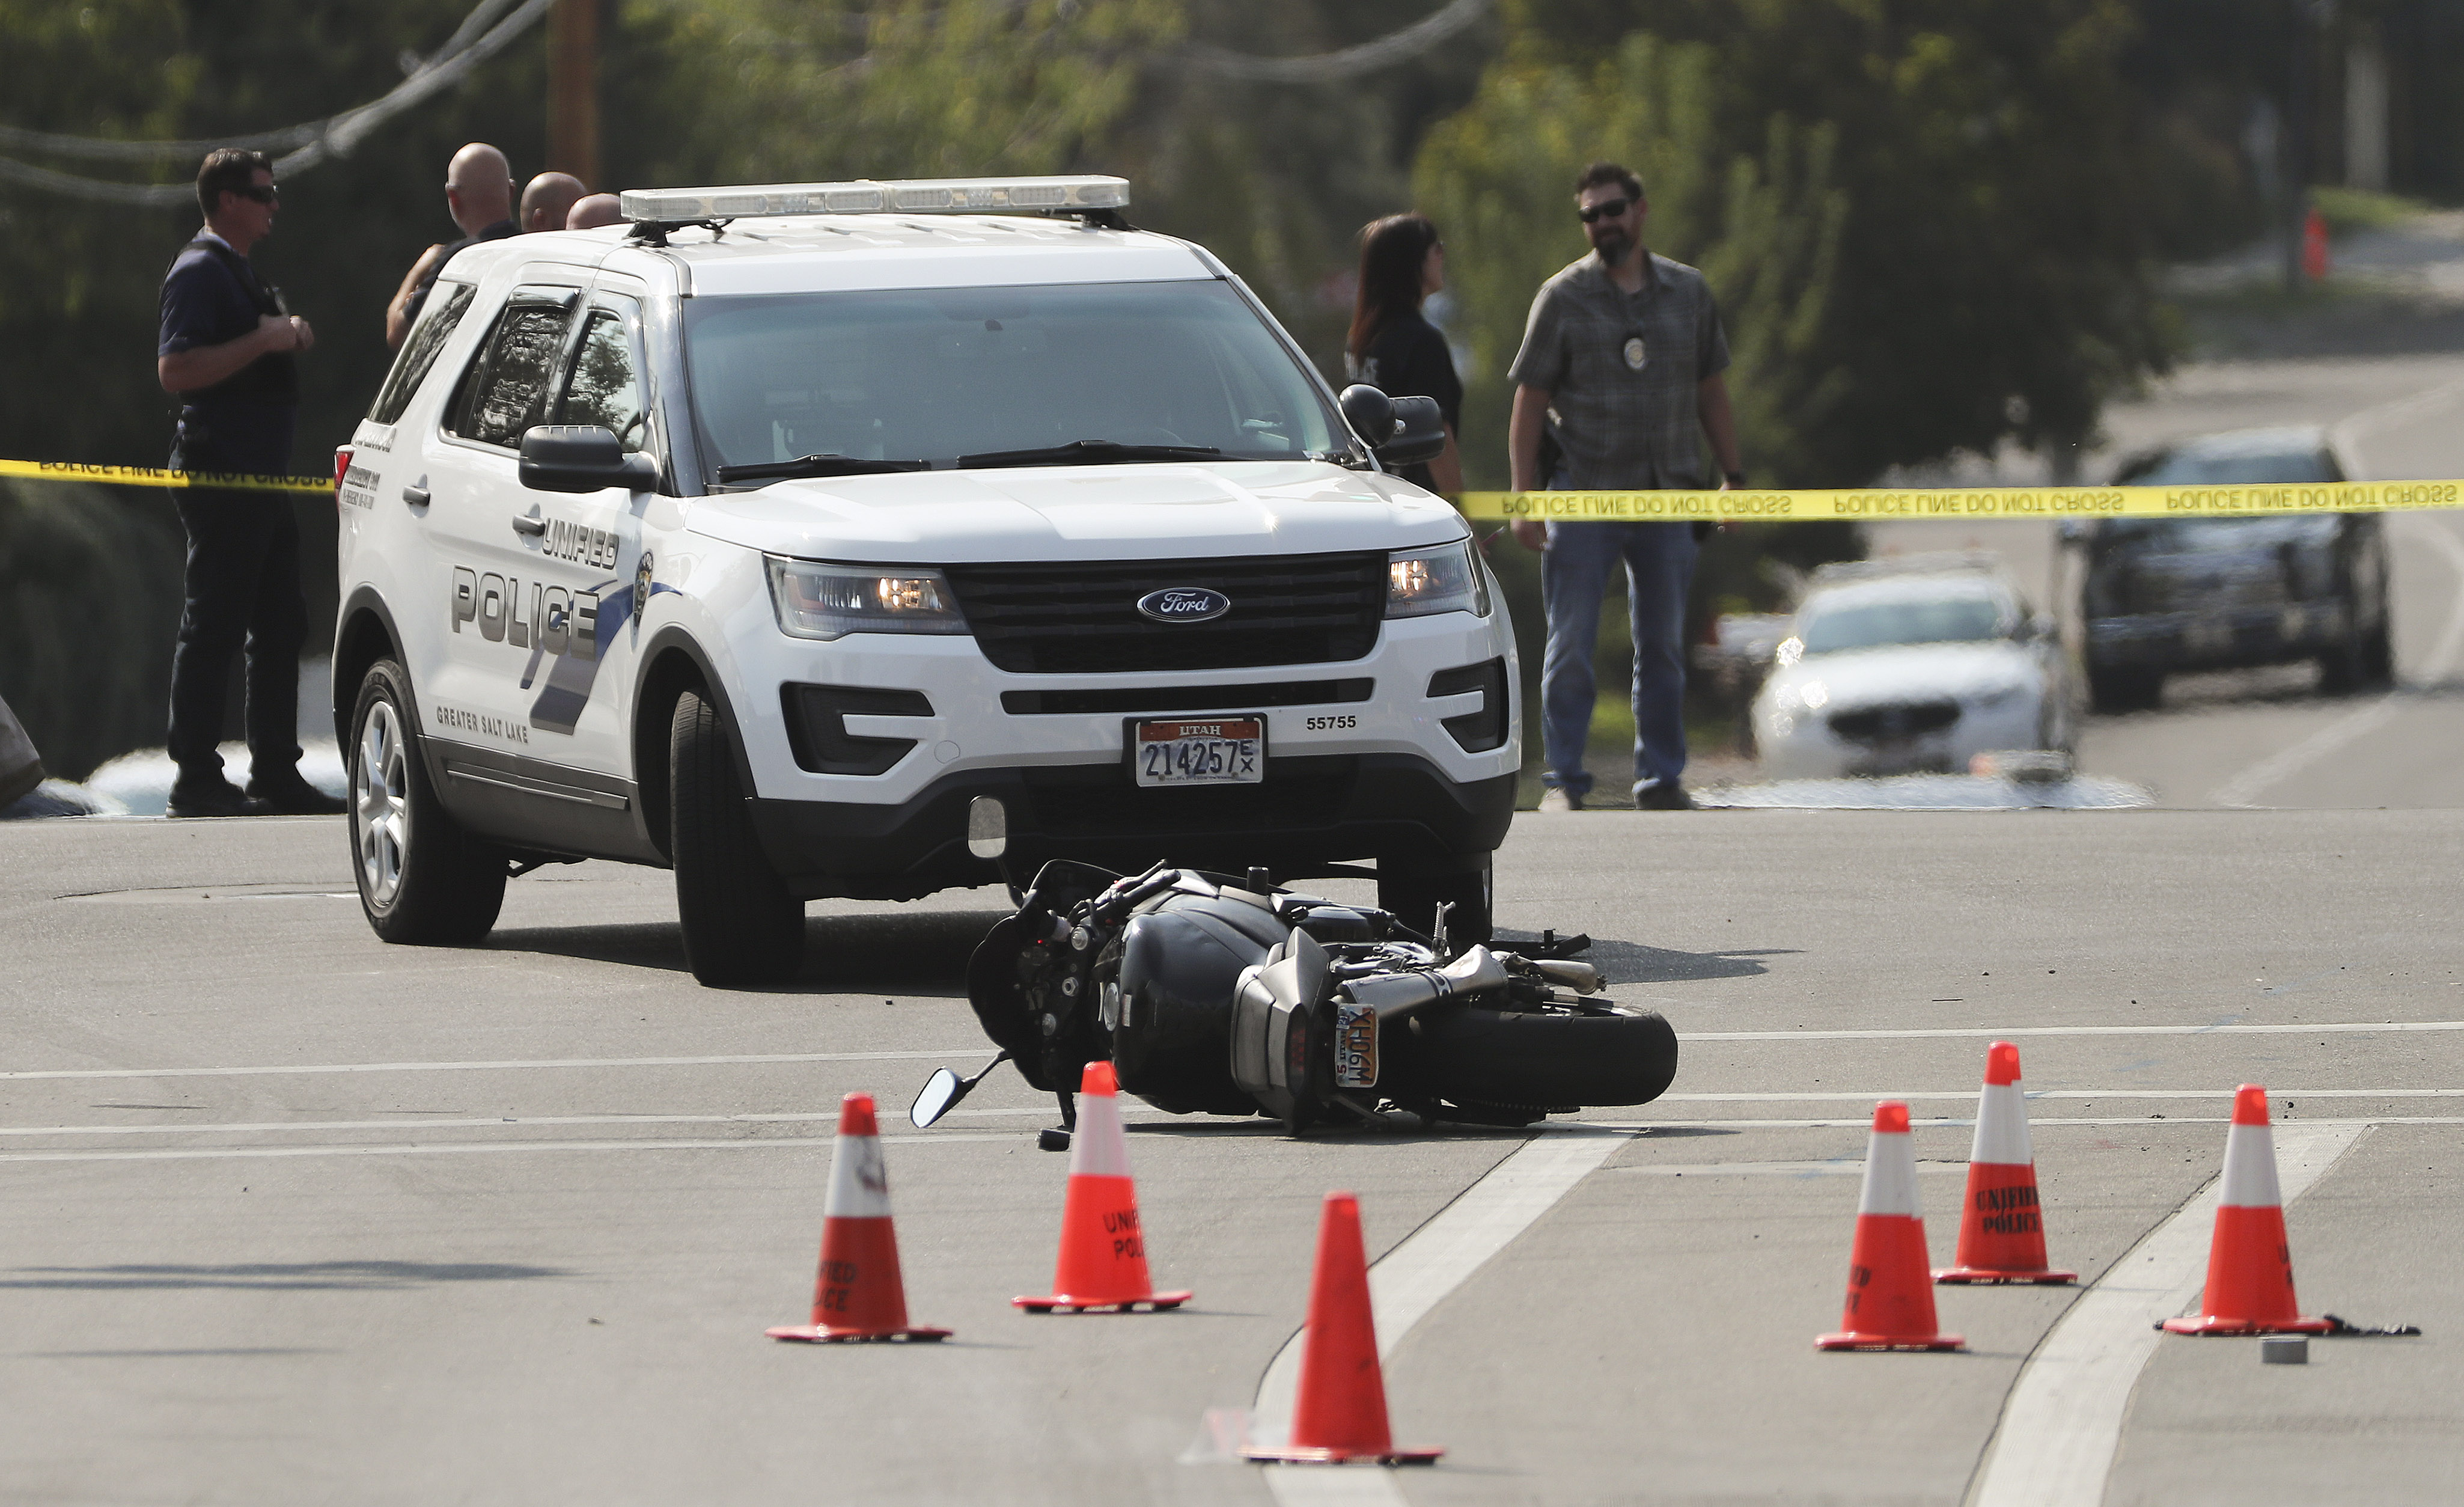 A motorcycle is pictured in the road a members of law enforcement investigate an officer-involved shooting at 4500 South and 2300 East in Holladay on Thursday, Sept. 17, 2020.